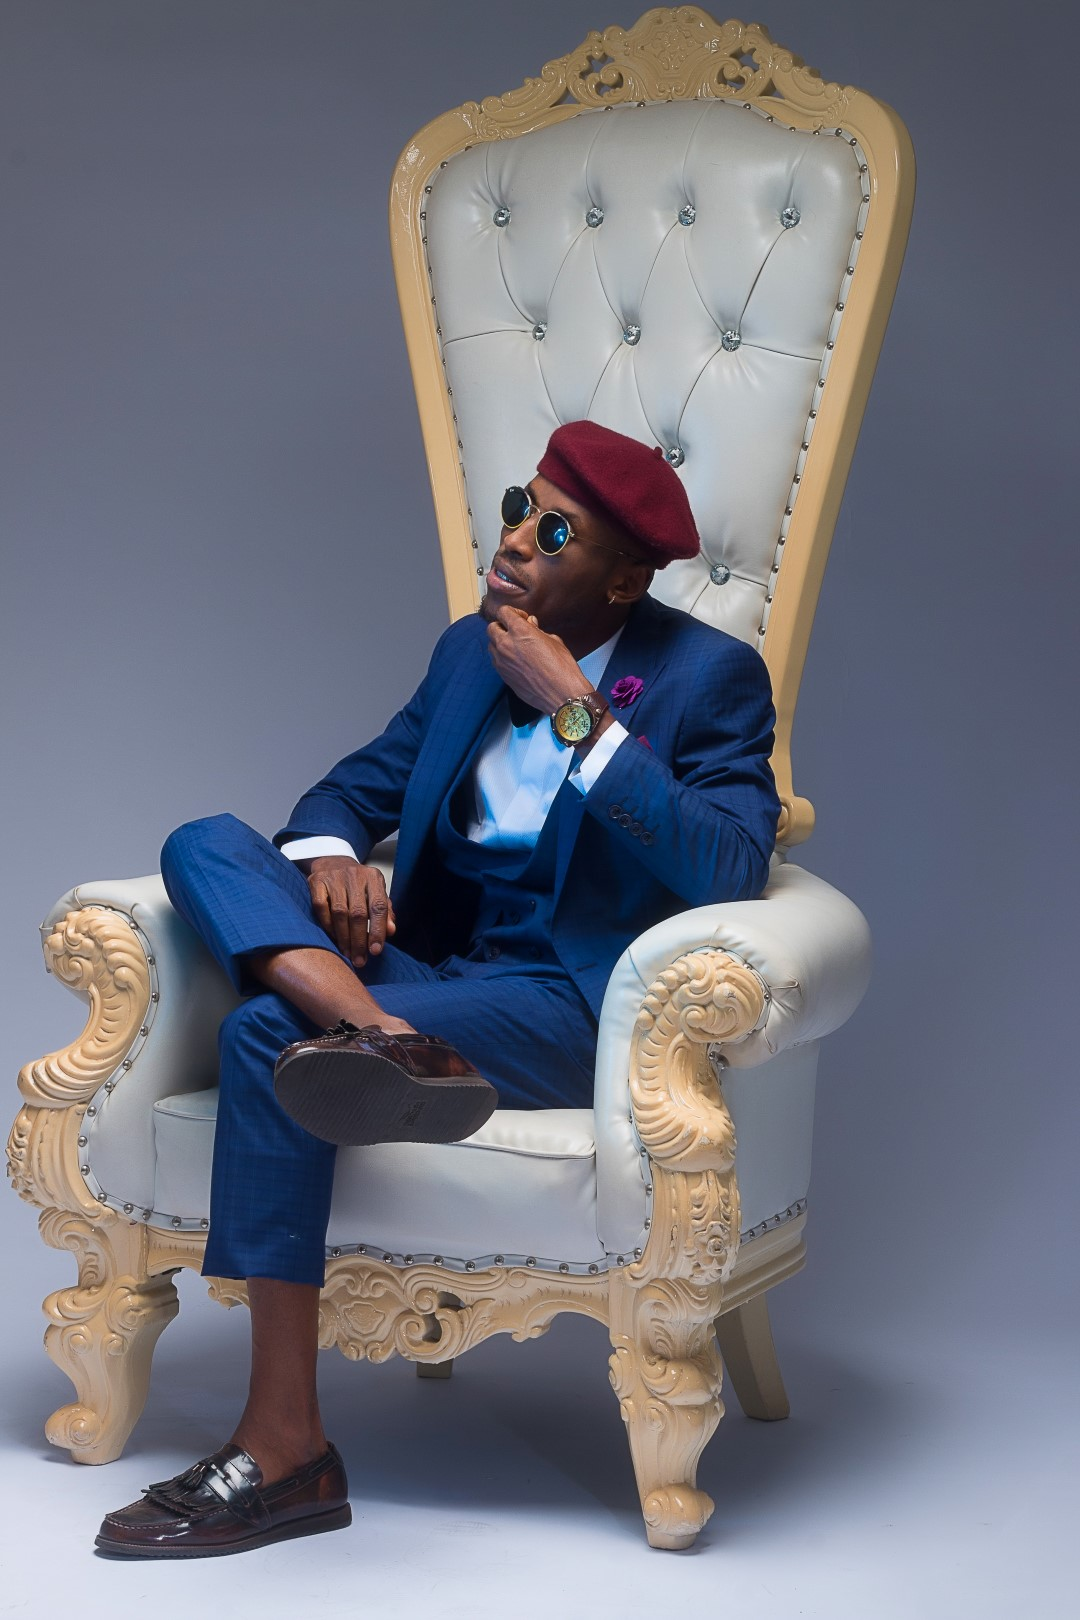 Mr 2kay Releases BTS Video and Photoshoot For Upcoming Album